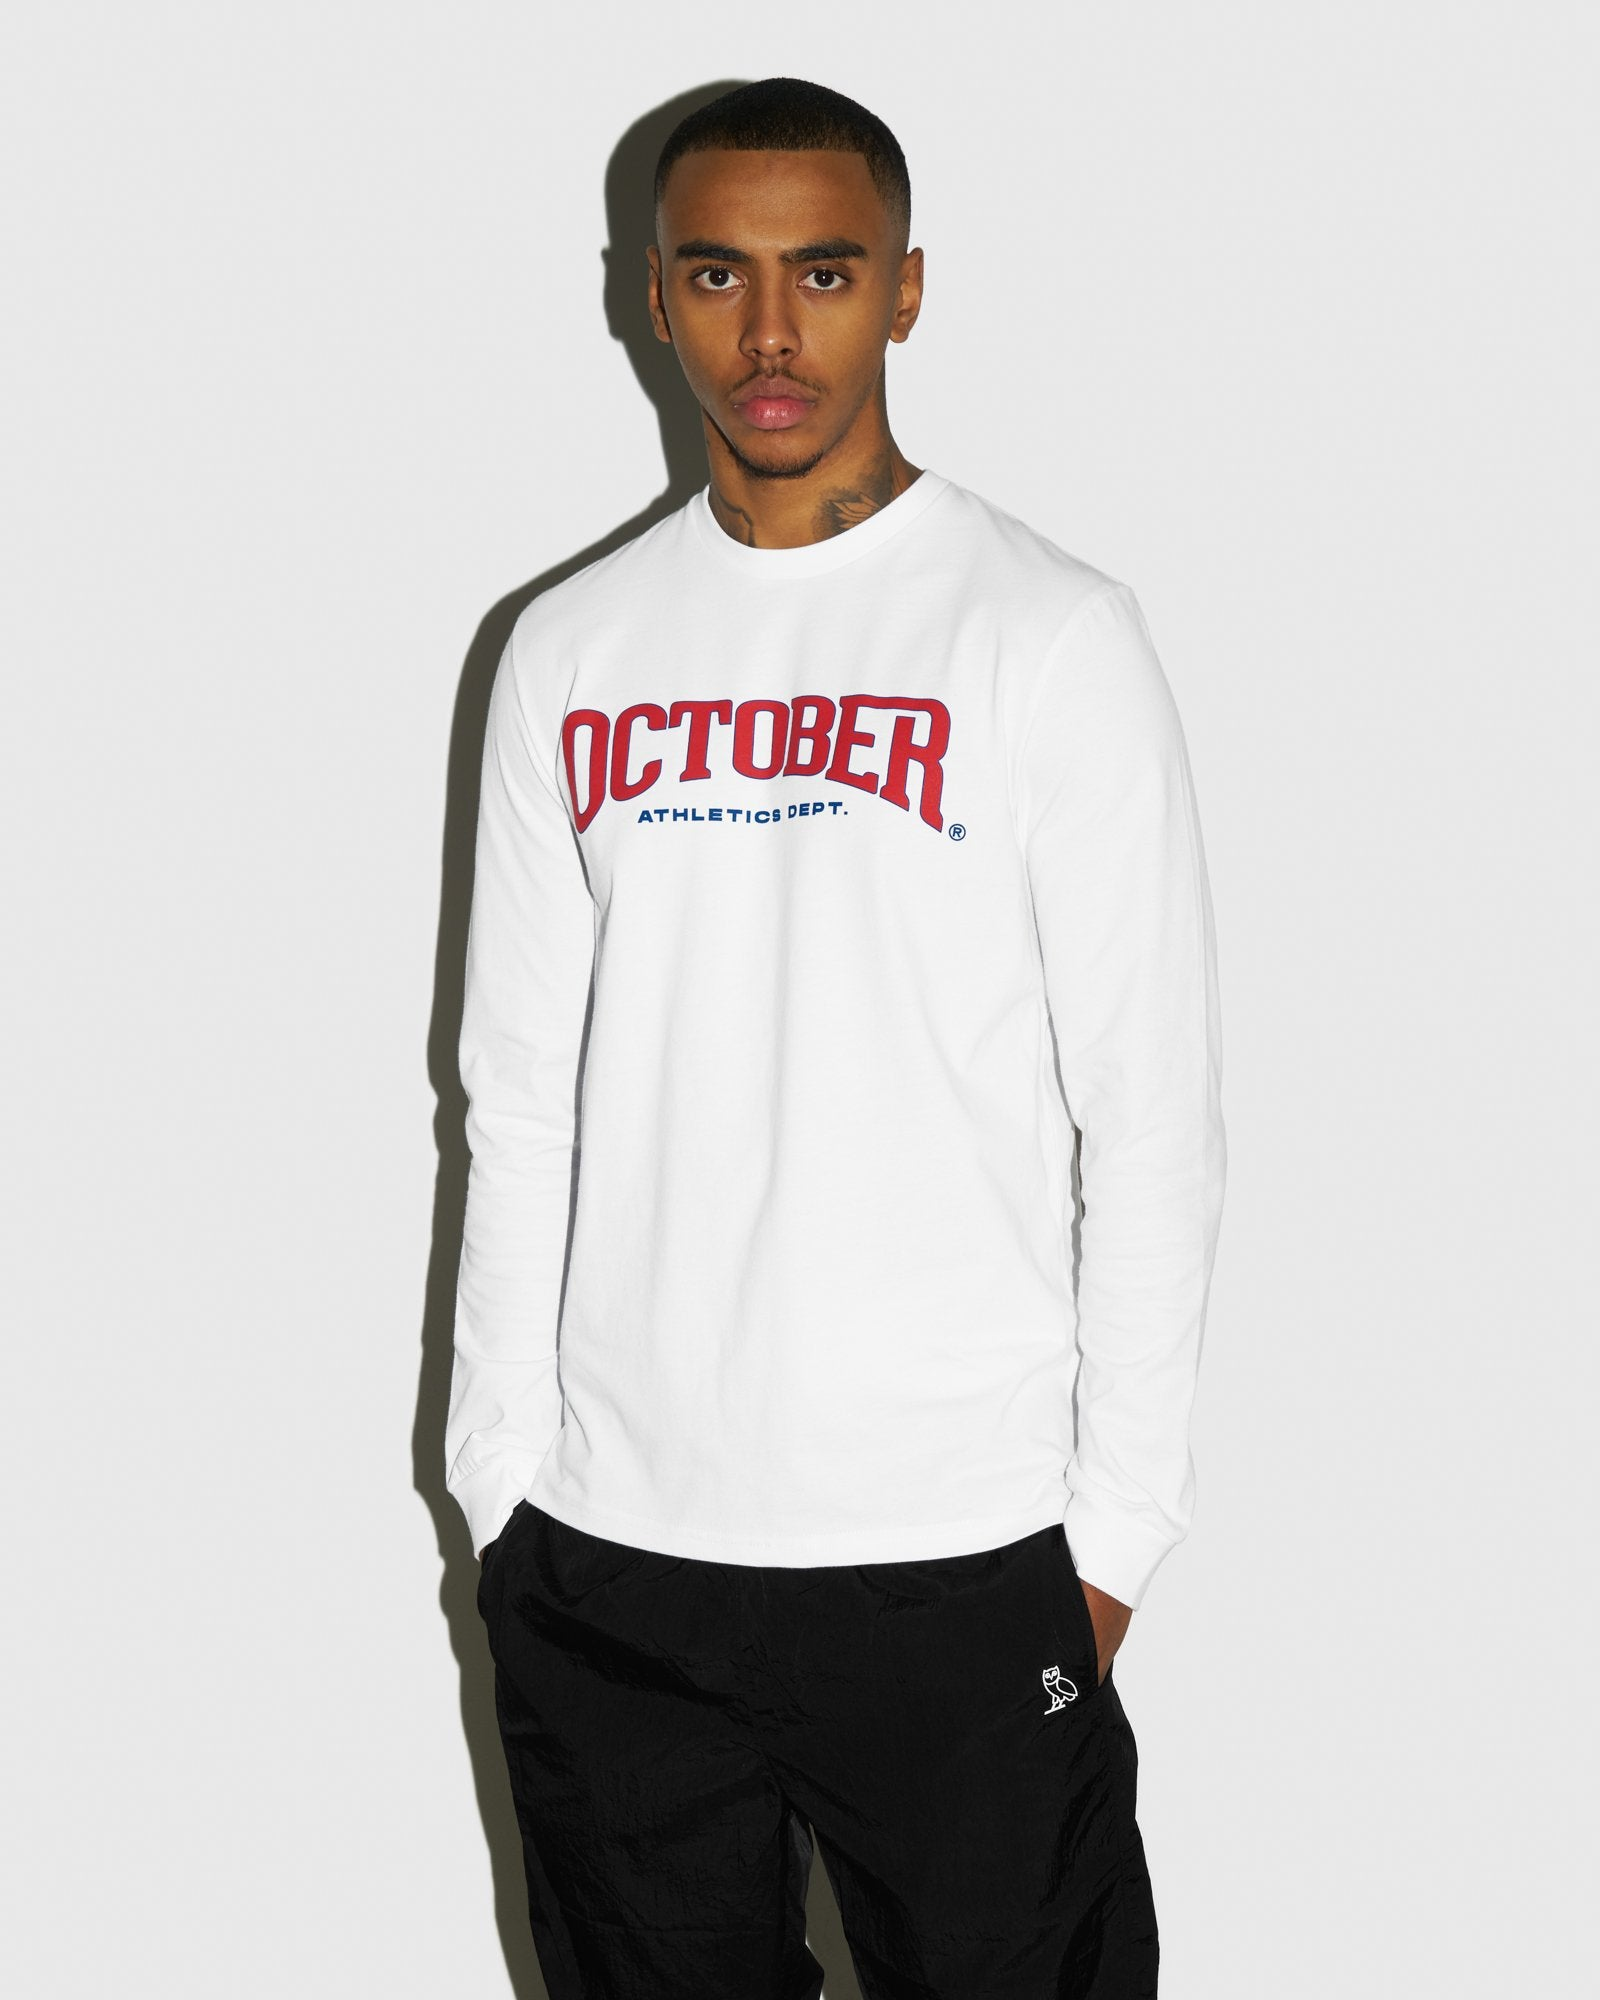 OCTOBER ATHLETICS LONGSLEEVE T-SHIRT - WHITE IMAGE #2